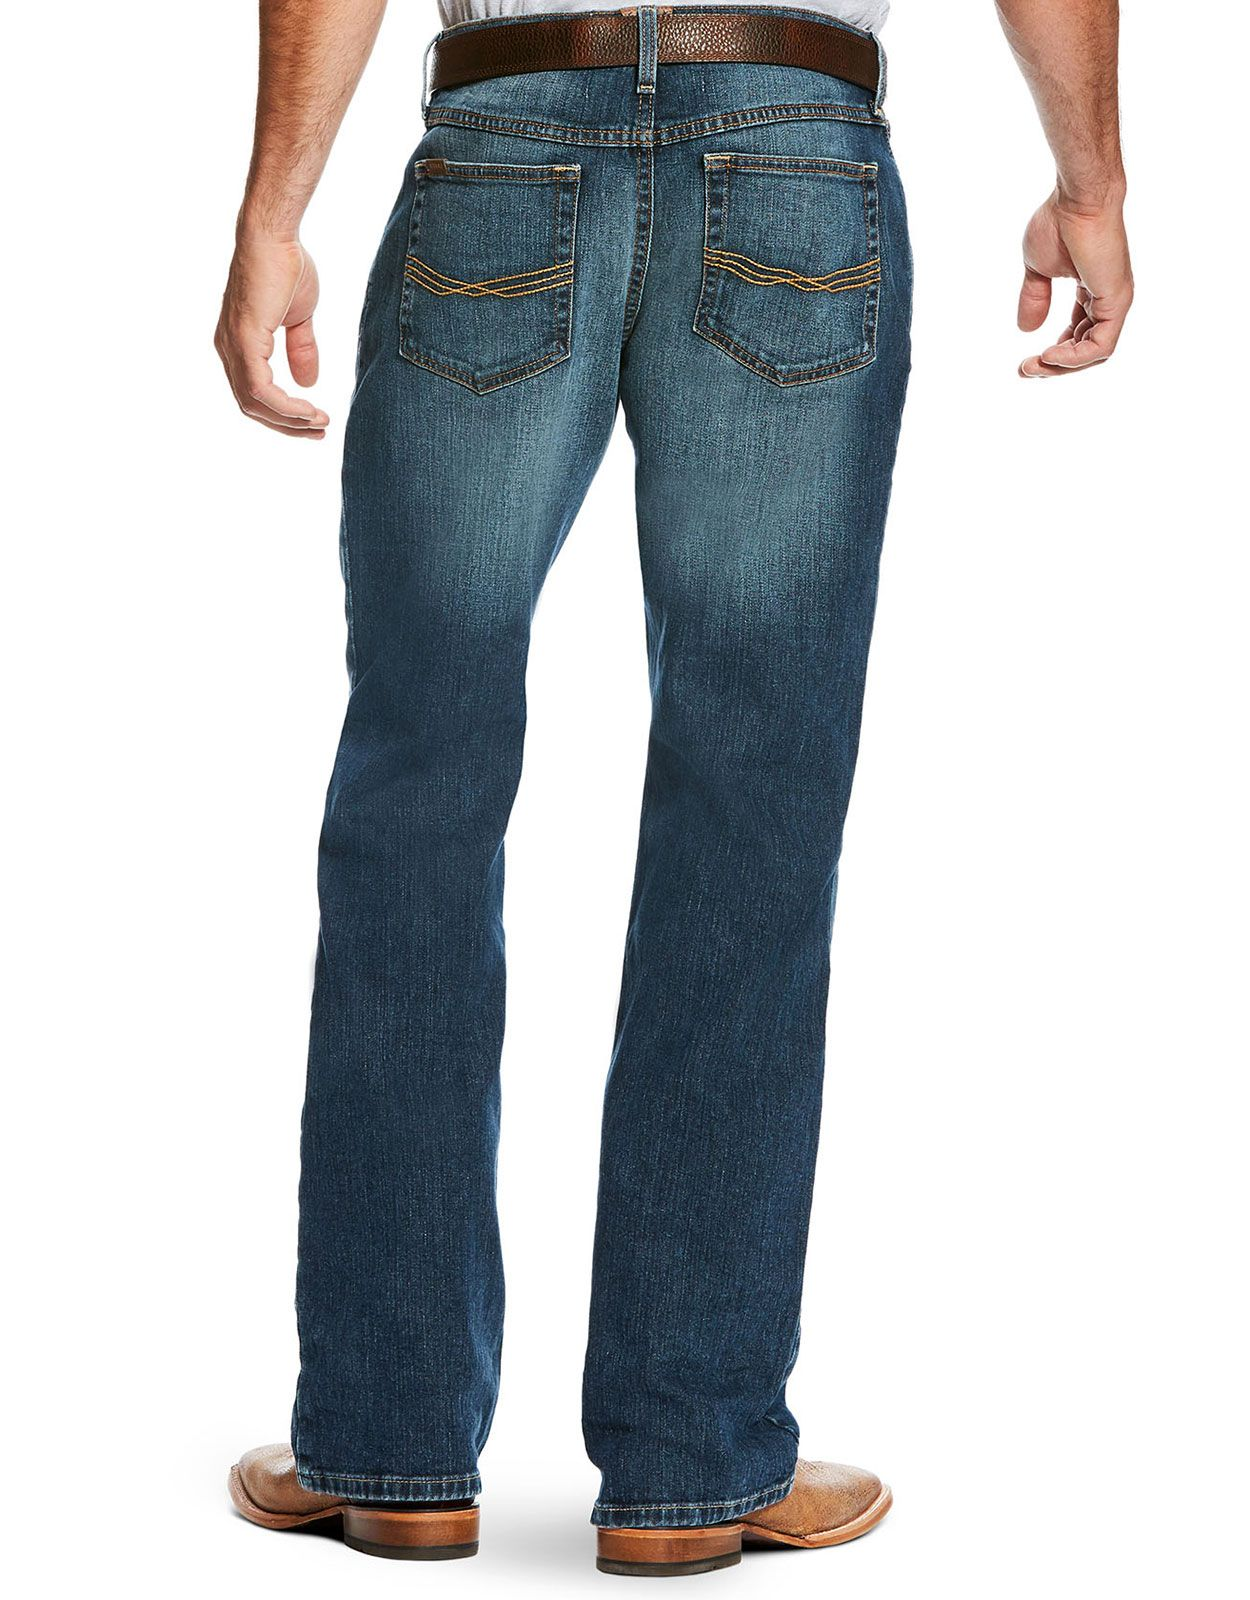 Ariat Men's M4 Legacy Stretch Low Rise Relaxed Fit Boot Cut Jeans - Kilroy